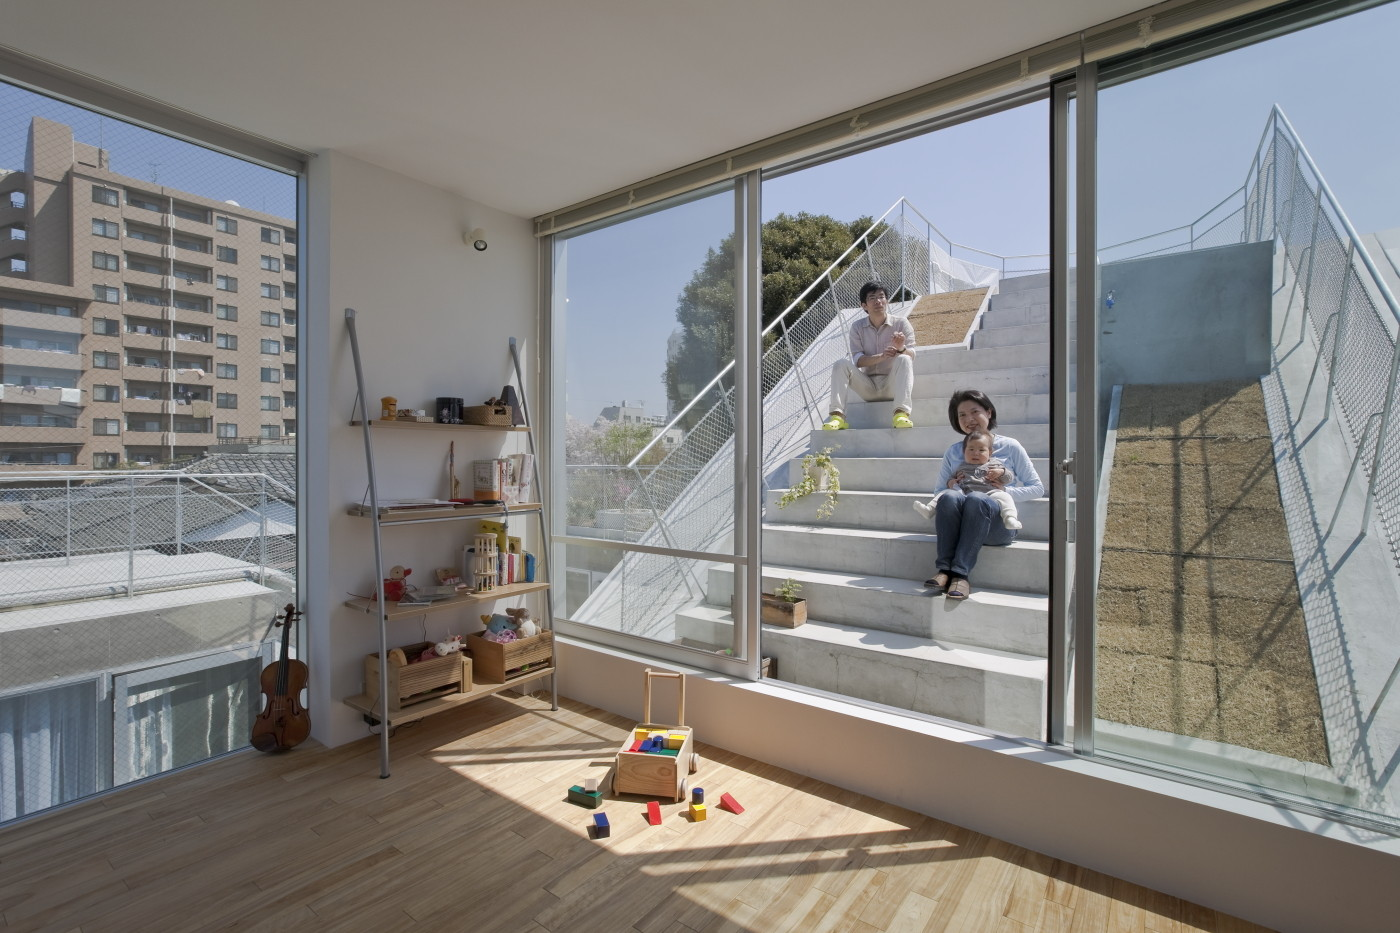 Gallery of Slide / Komada Architects' Office - 4